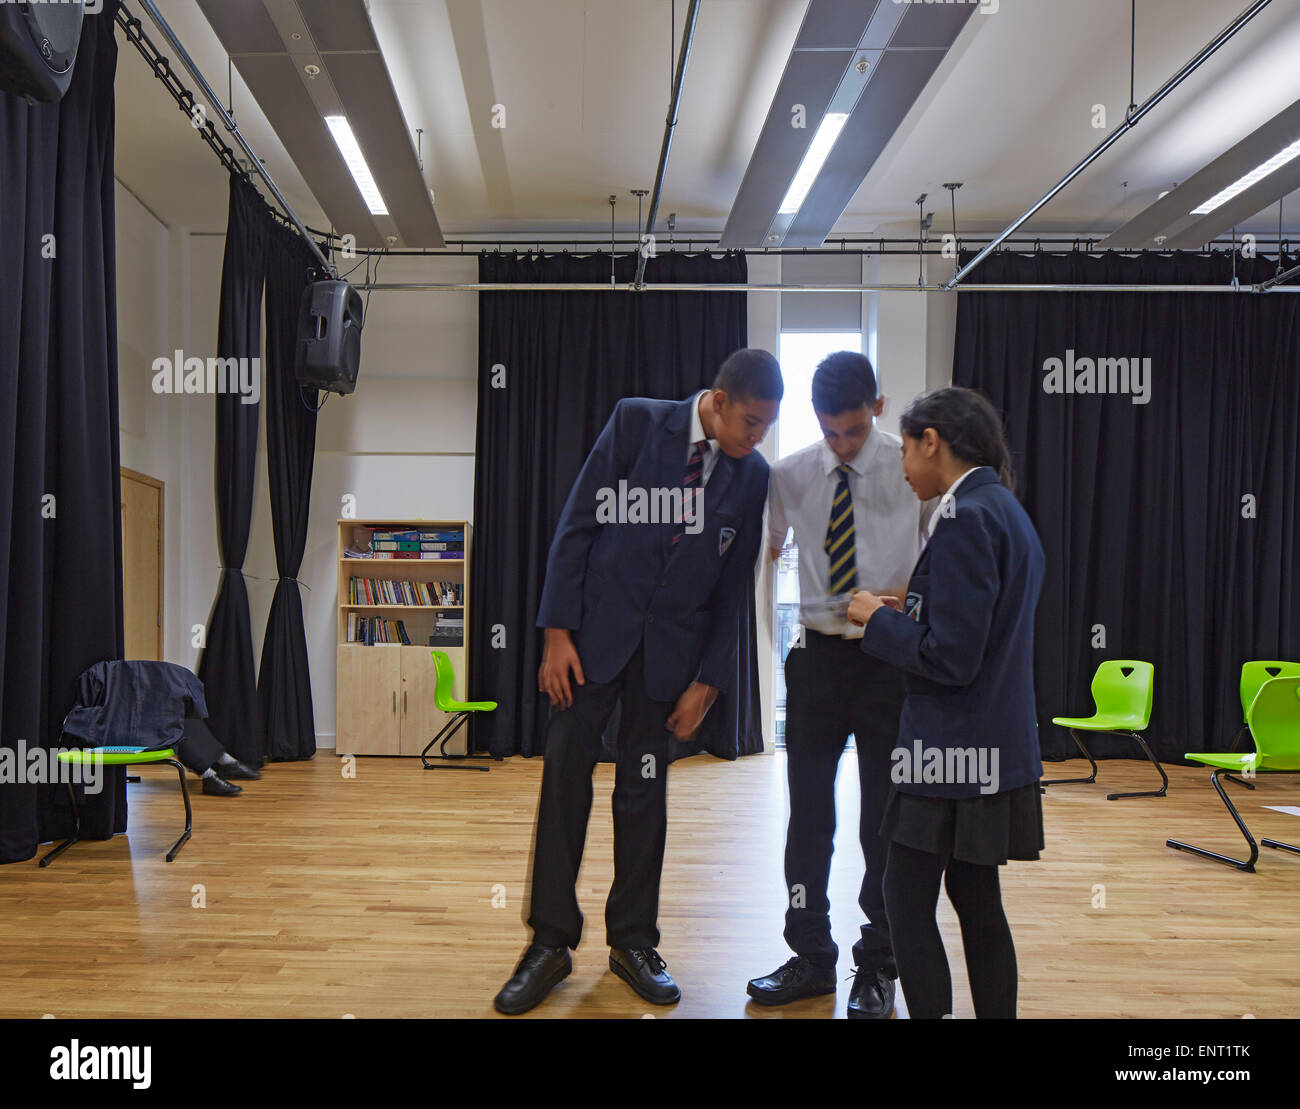 Multi-functional performance space with students. Regent High School, London, United Kingdom. Architect: Walters - Stock Image